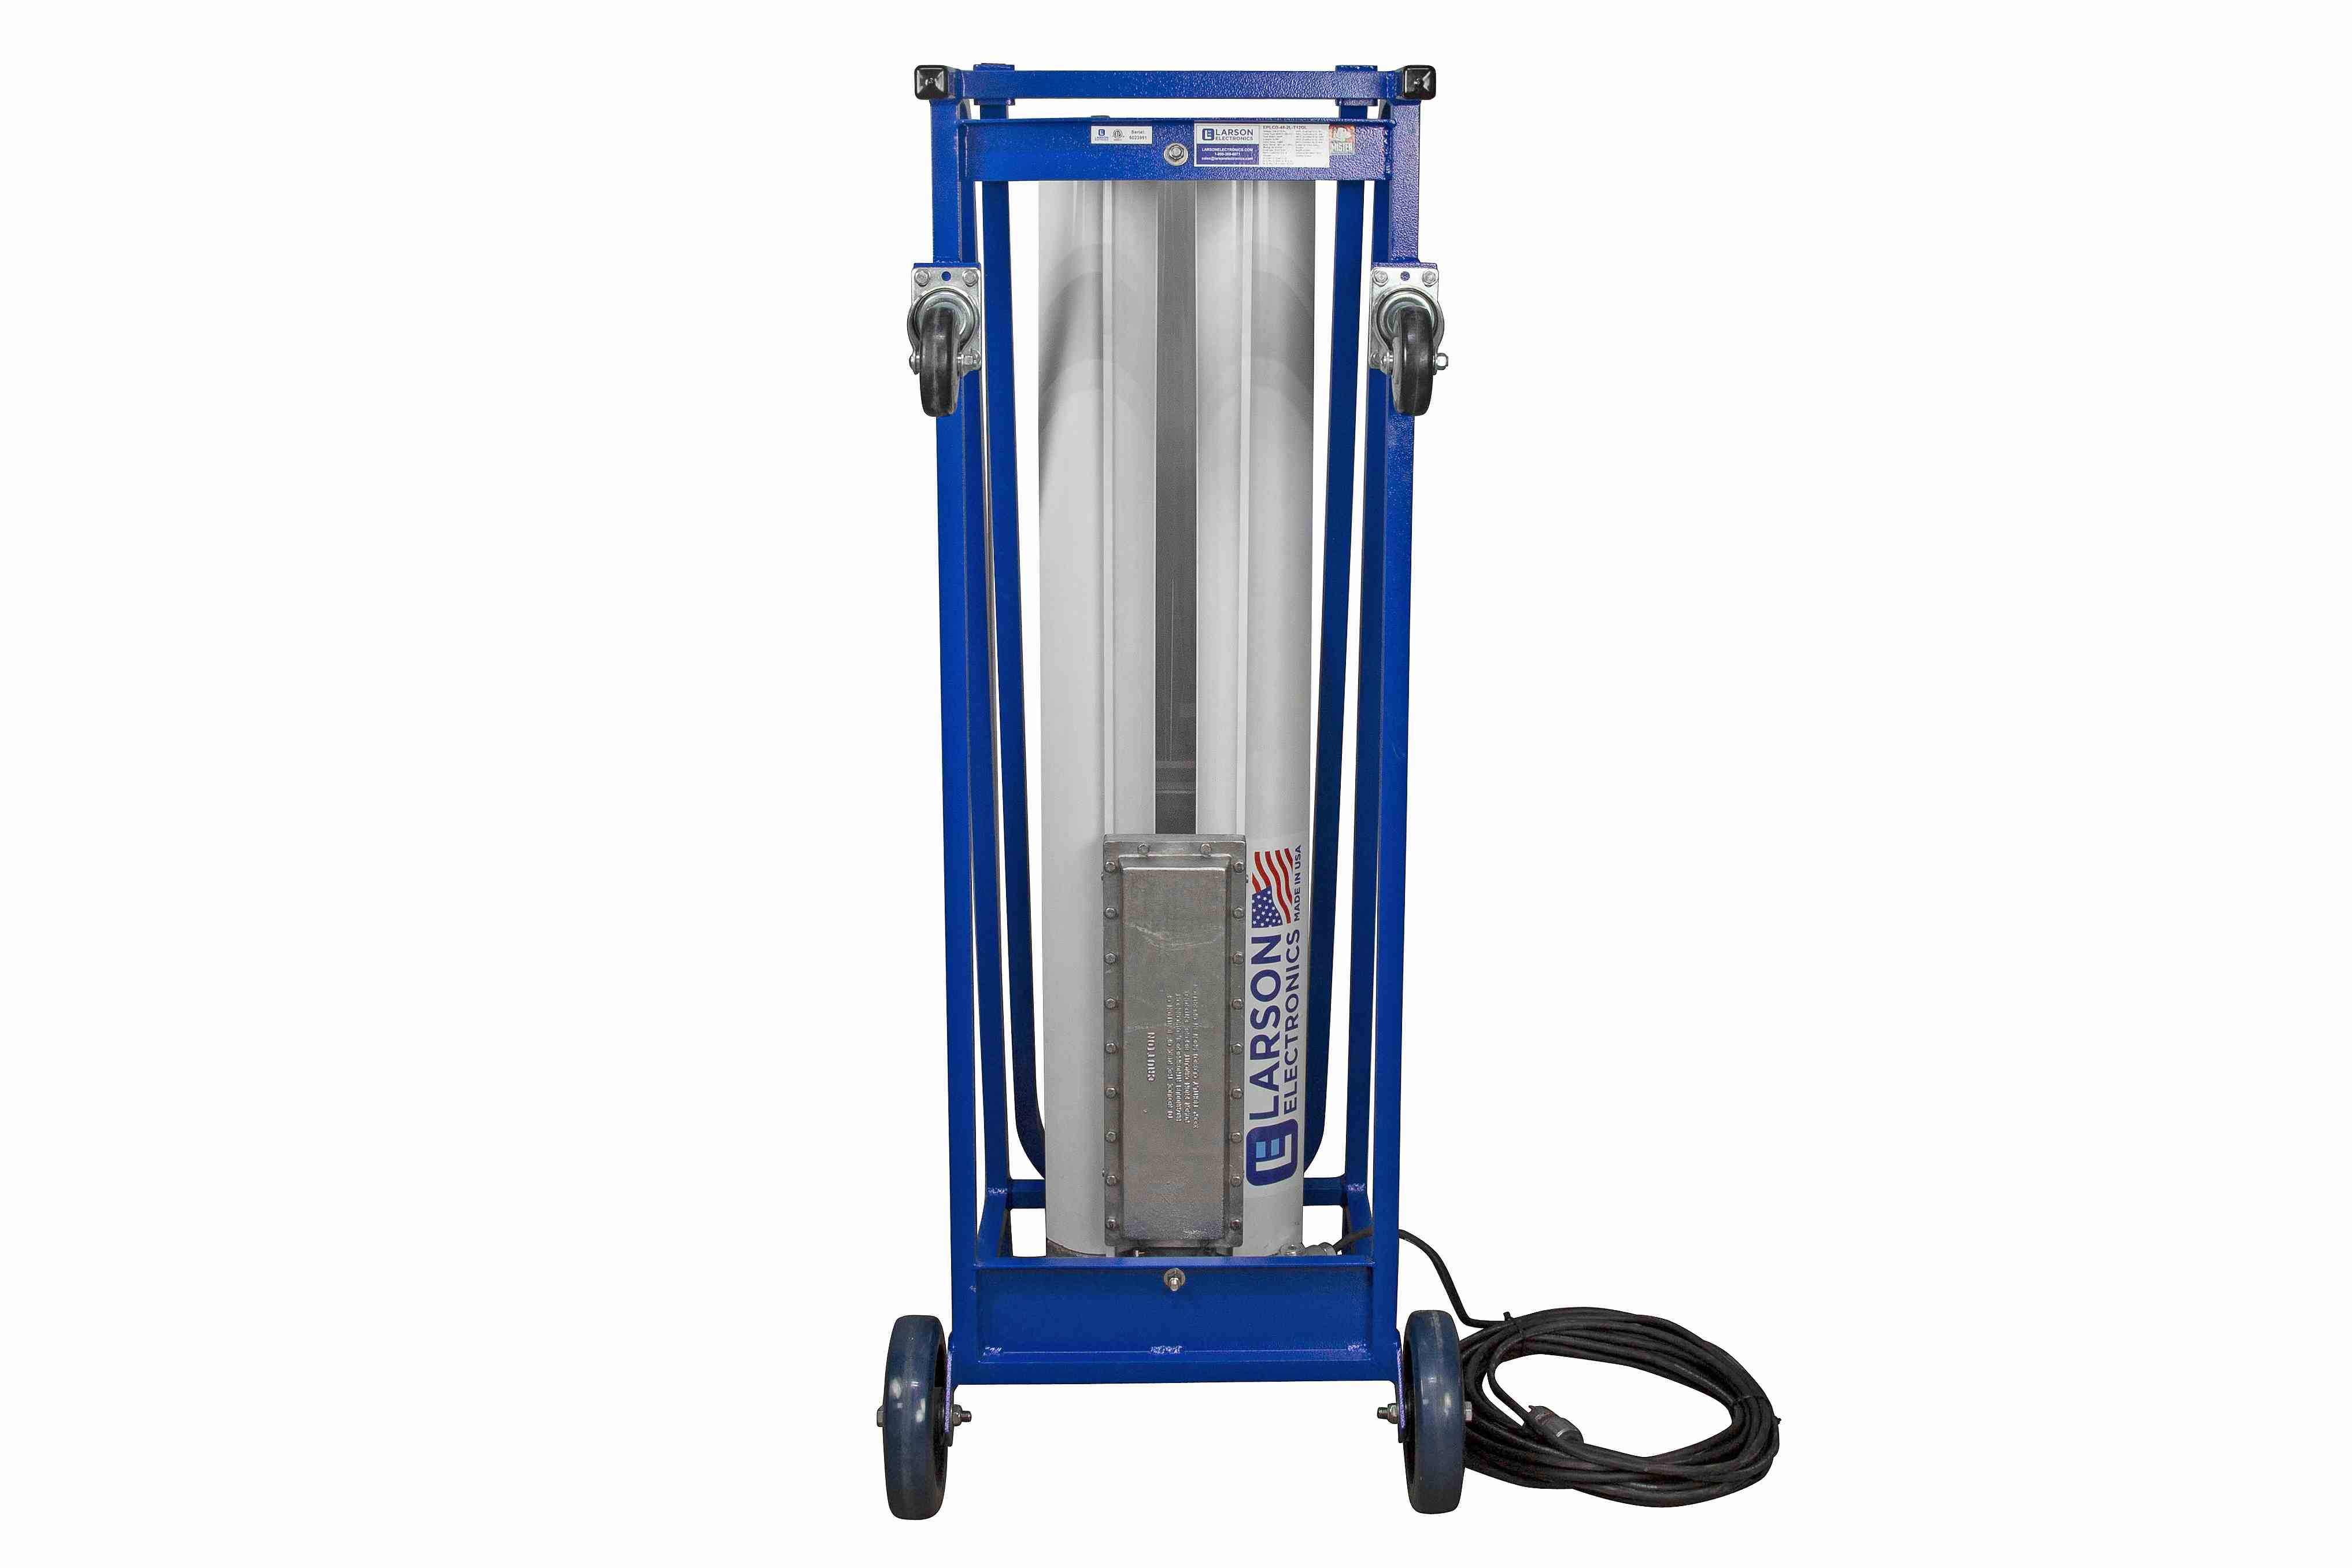 Explosion Proof Paint Spray Booth Light On Dolly Cart With